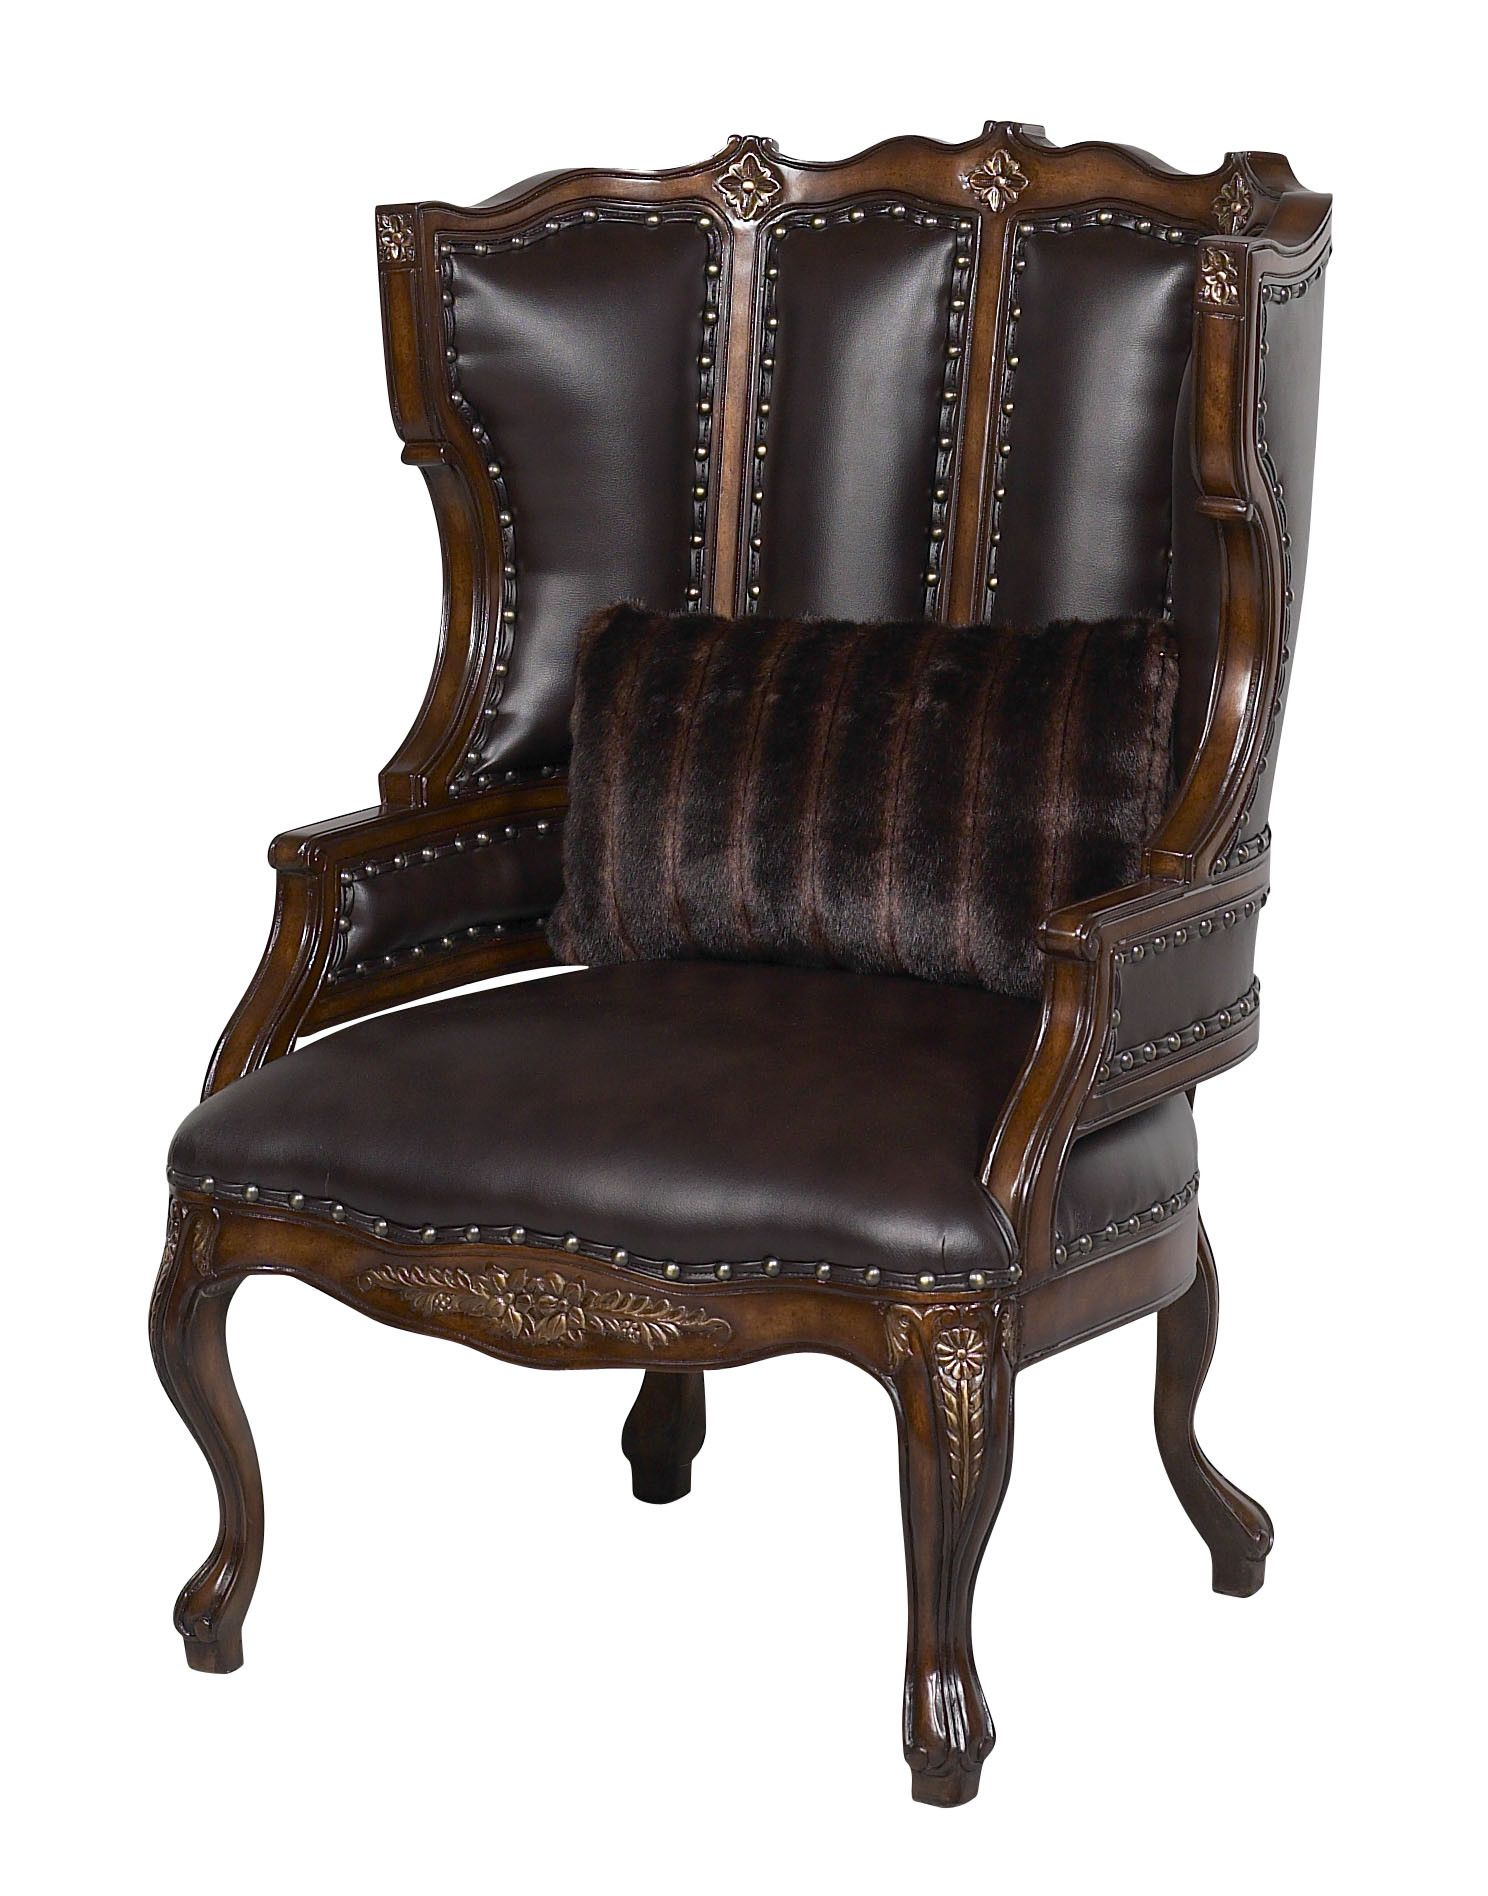 Wayfair Victorian Chairs Cavali Wingback Chair My Room Luxury Chairs Accent